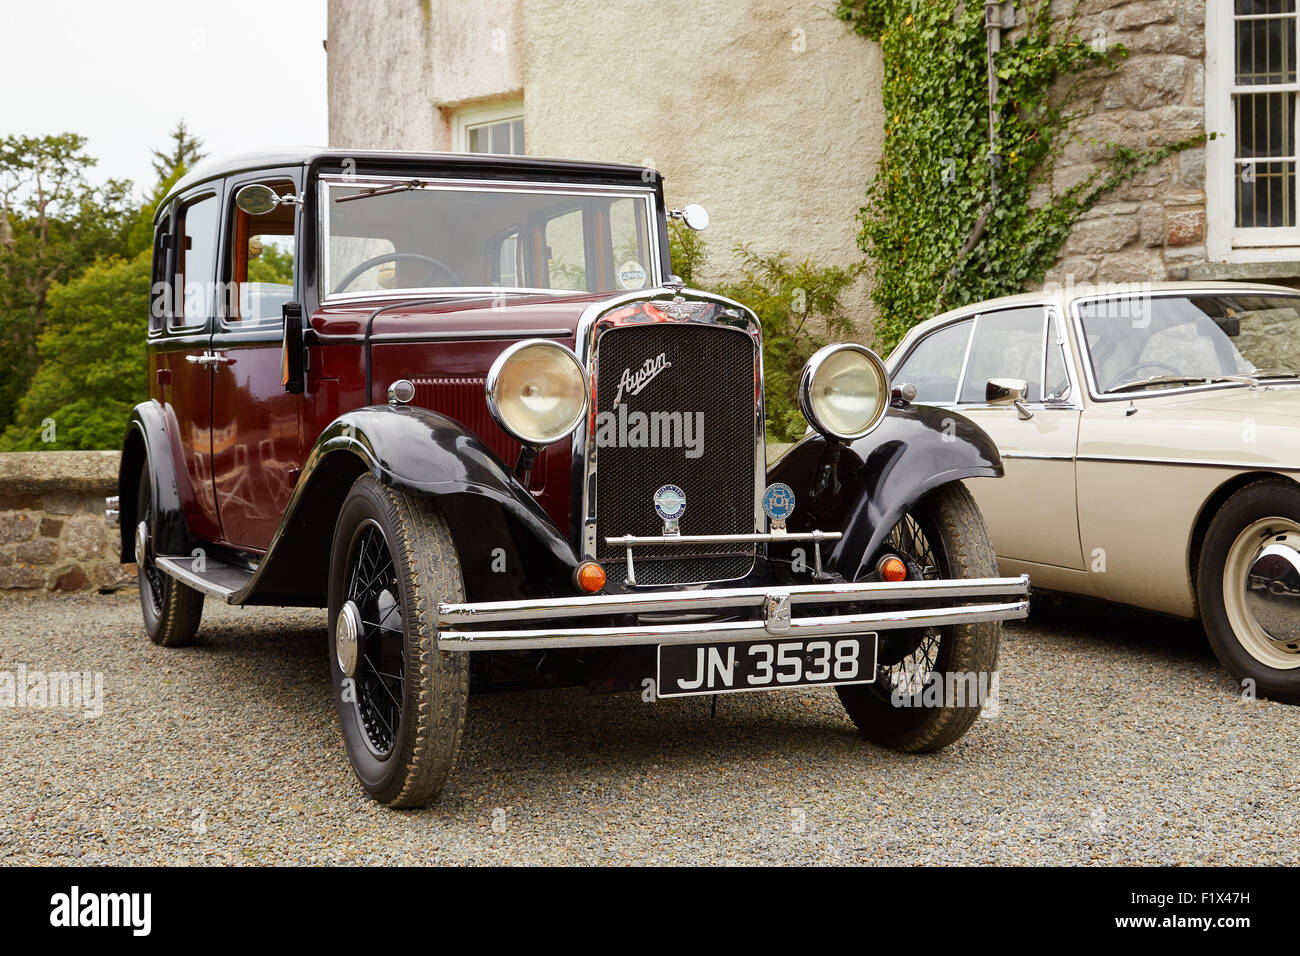 Old Austin Car High Resolution Stock Photography And Images Alamy